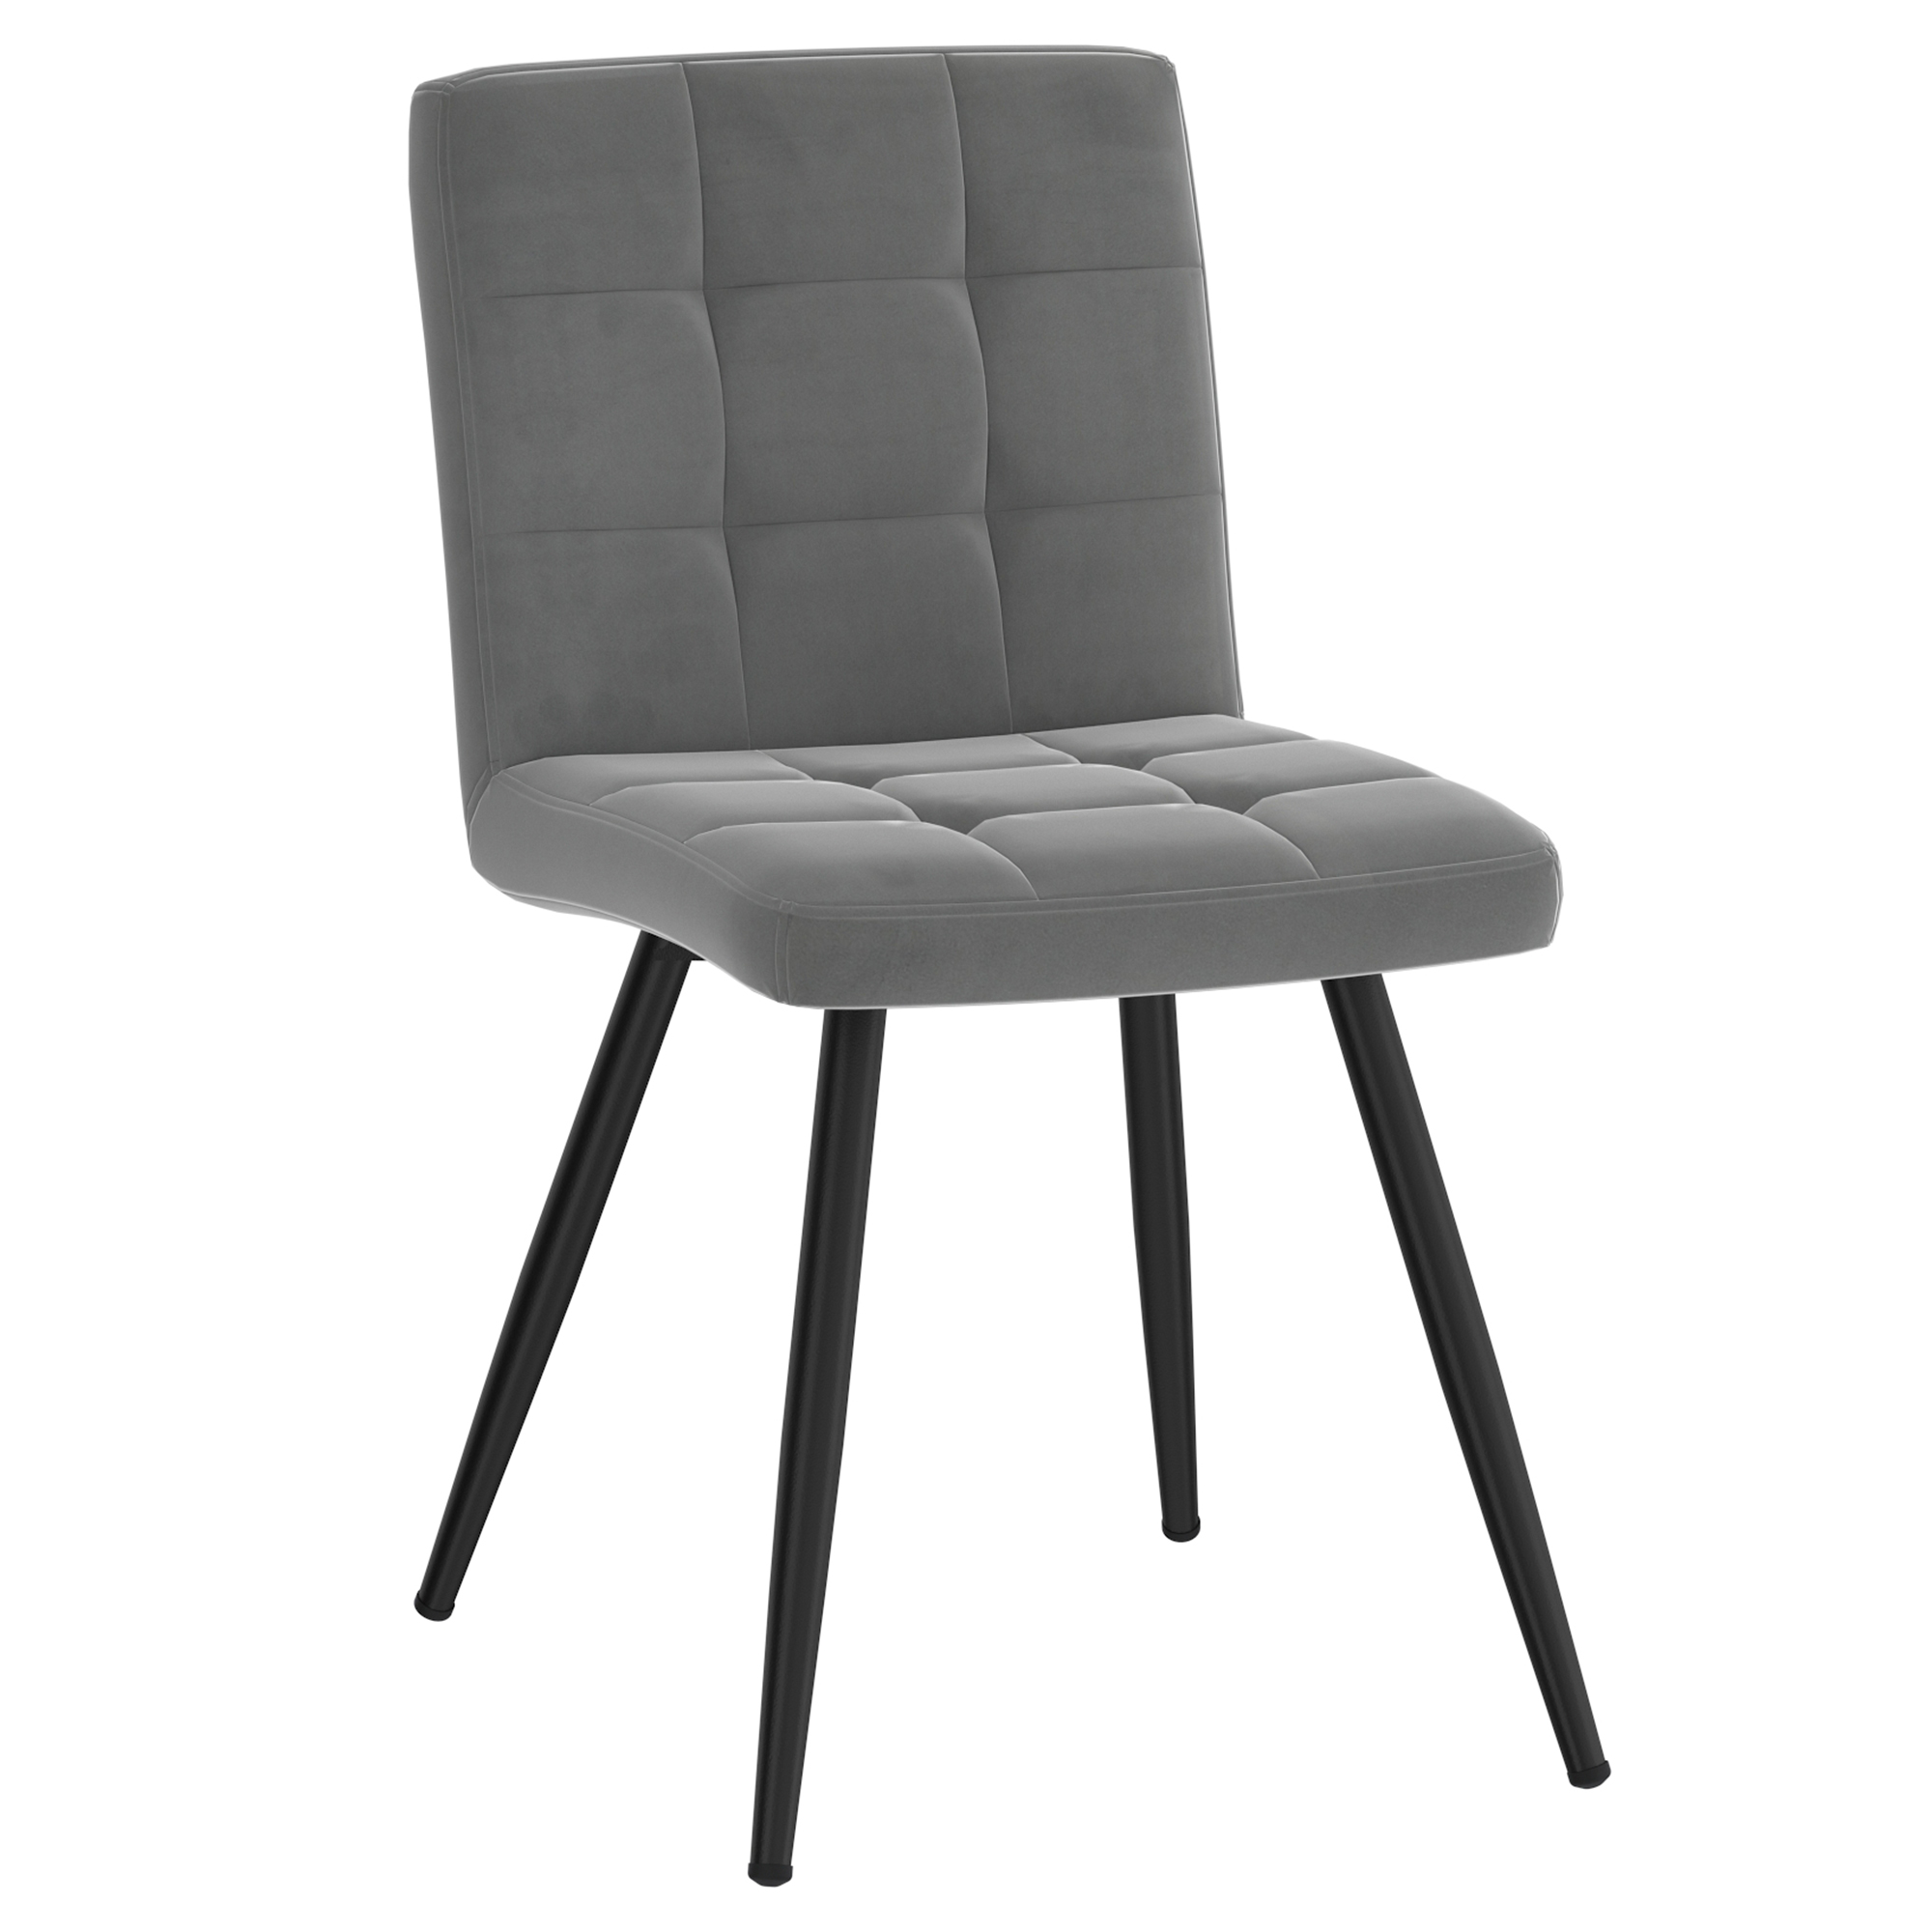 Set of 2 Contemporary Velvet & Metal Side Chair in Grey